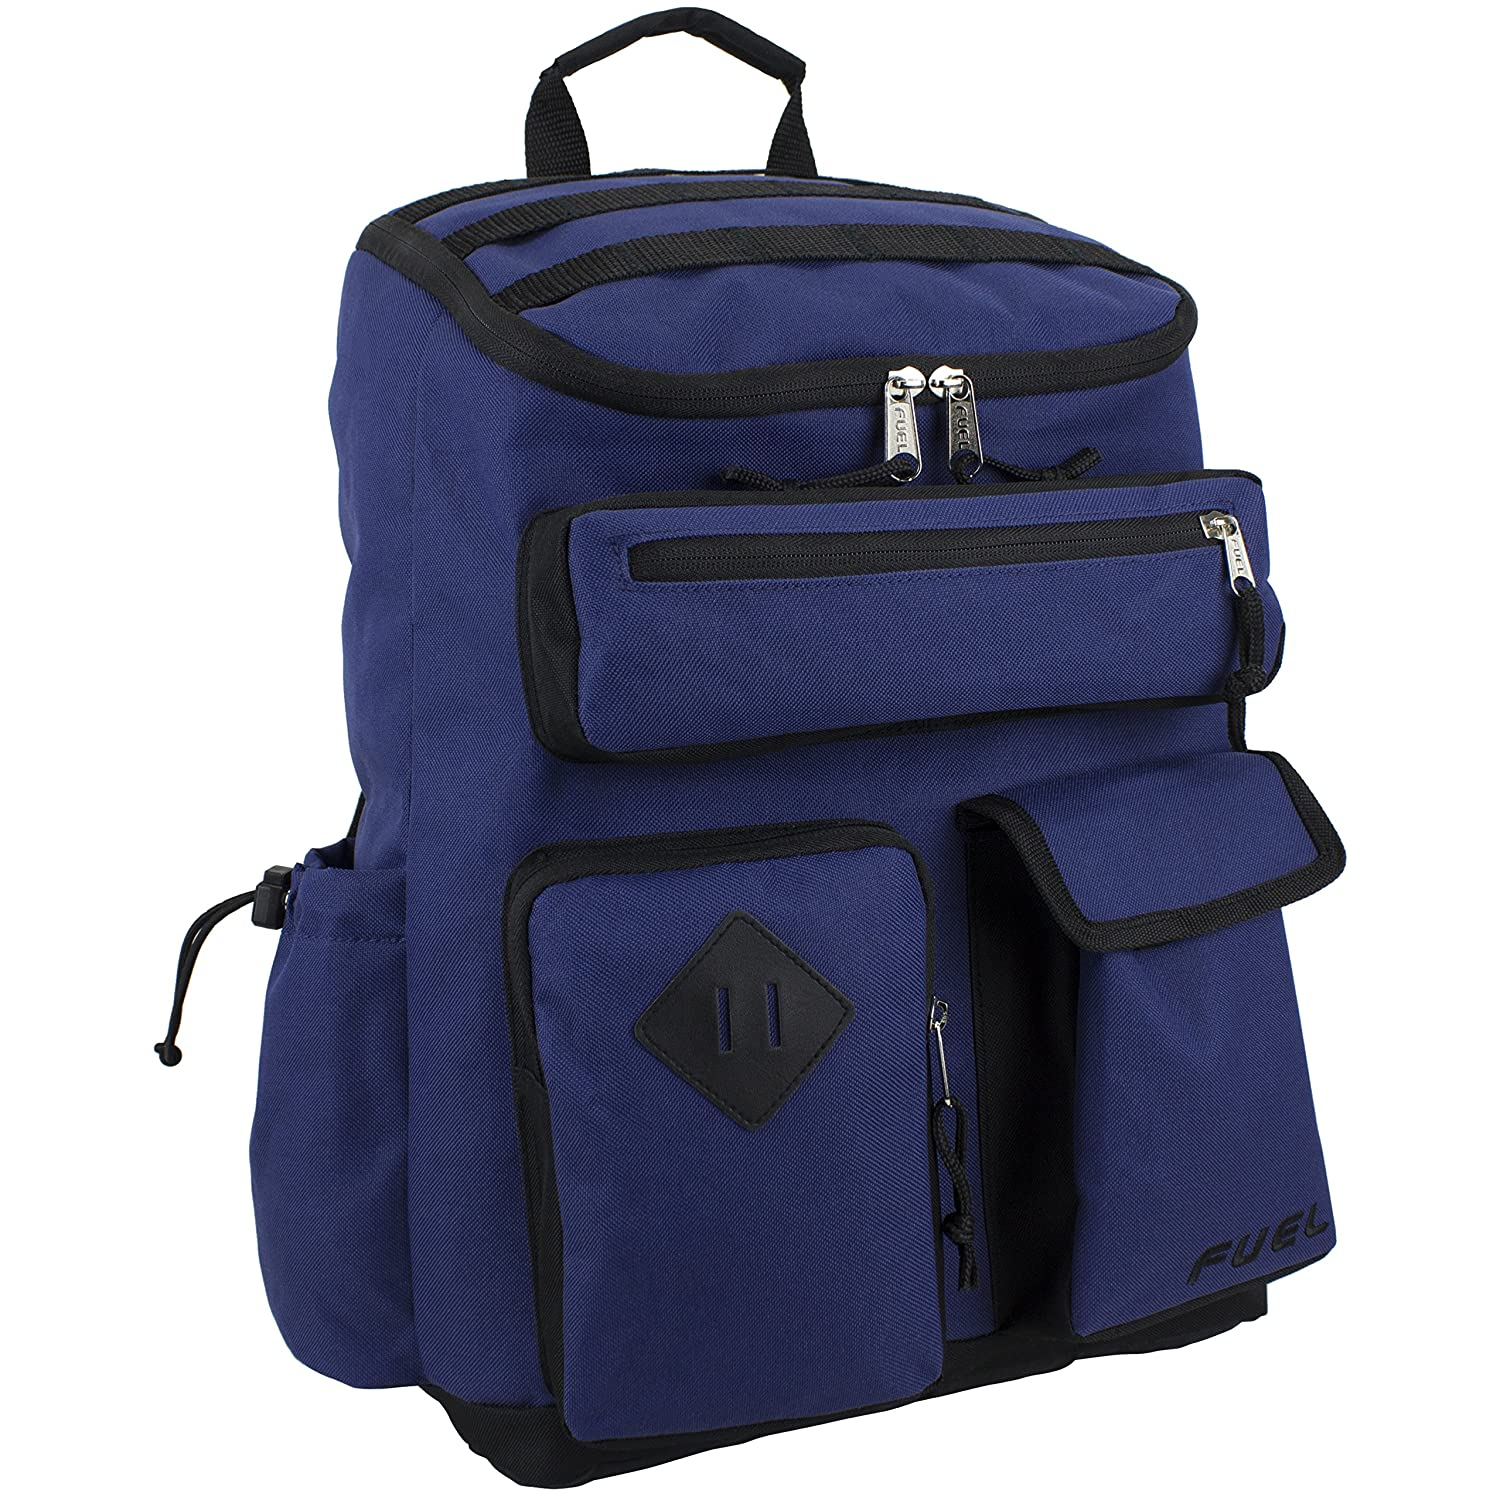 Deep Cobalt bluee One size Fuel Top Loader Cargo Backpack